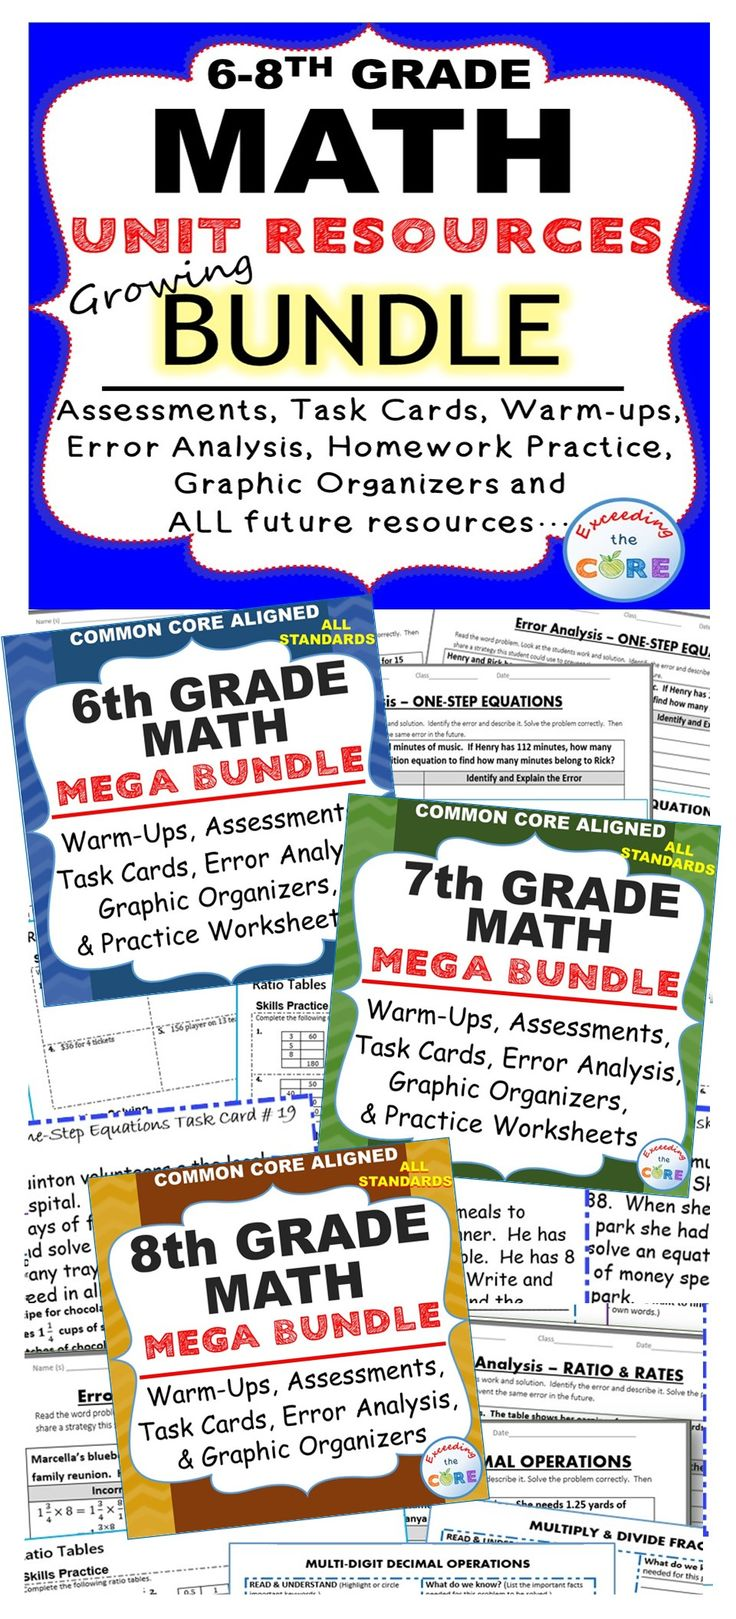 Middle School Math Growing Common Core Mega Bundle (6th grade math, 7th grade math and 8th grade math) ~ Over 1,000 pages of assessments, warm-ups, task cards, error analysis worksheets, problem solving graphic organizers, homework practice worksheets, puzzles and answer keys.  Perfect for warm ups, homework, math centers, assessments, exit tickets, and test prep. Includes number sense, expressions and equations, ratios & proportions, rational numbers, geometry, statistics, probability…